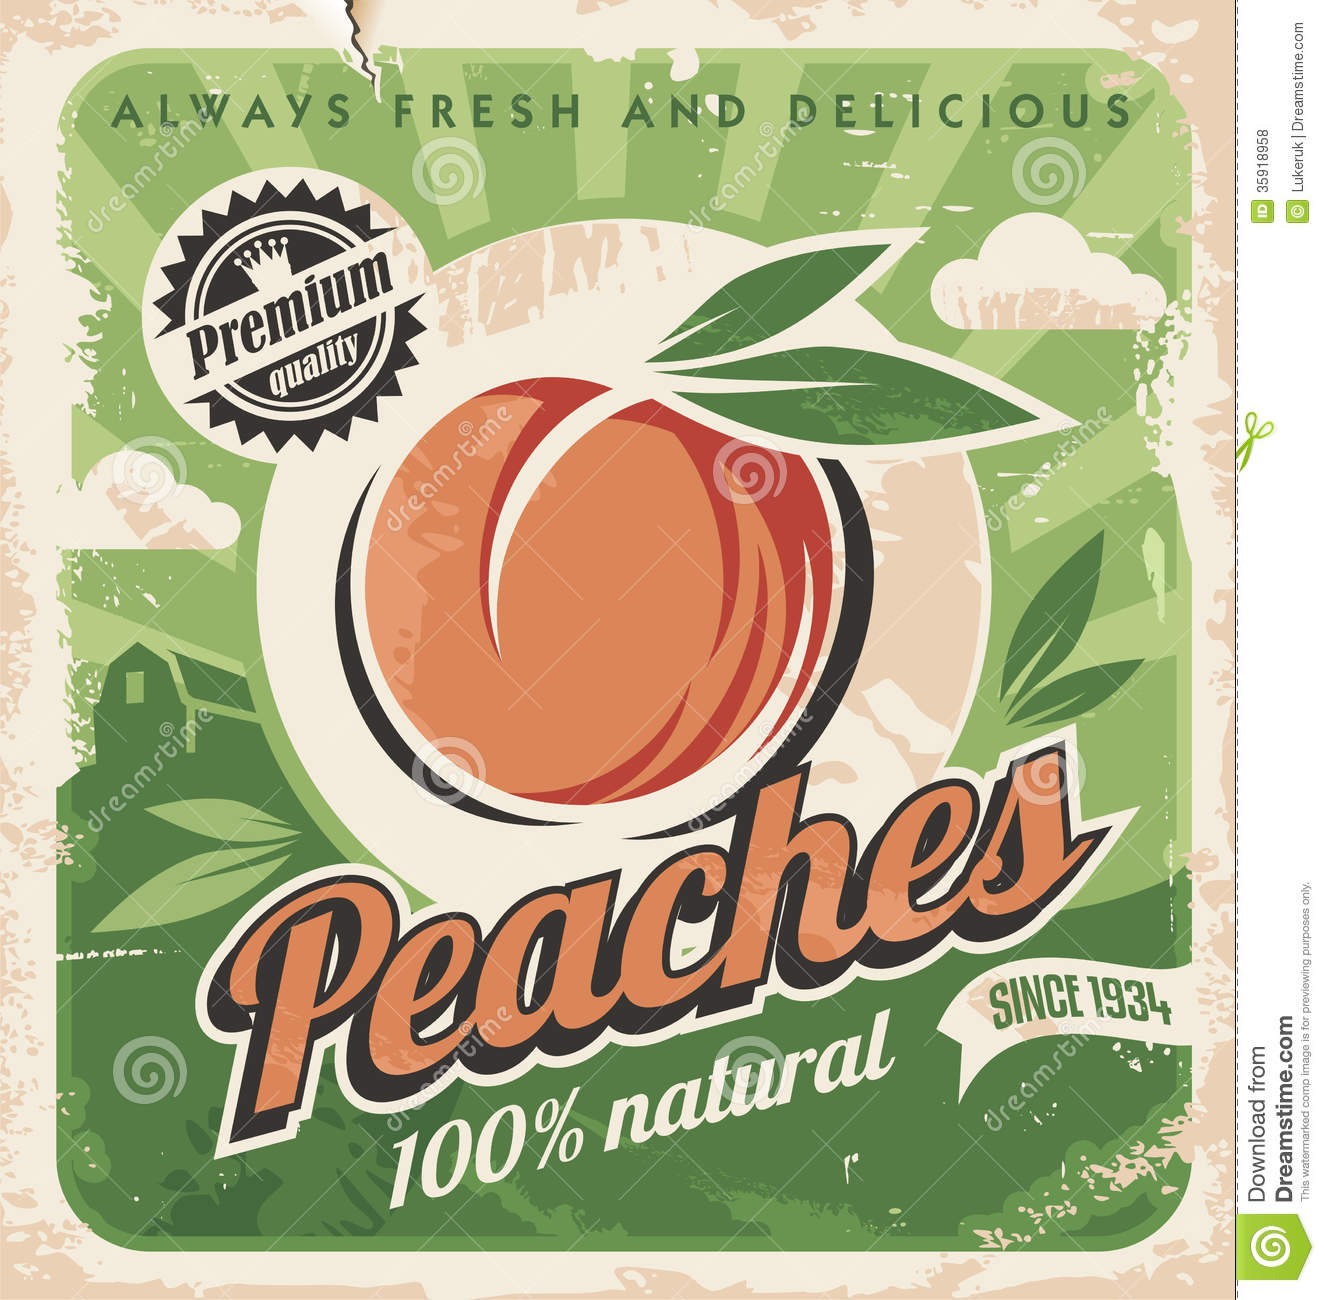 Peaches, vintage poster template